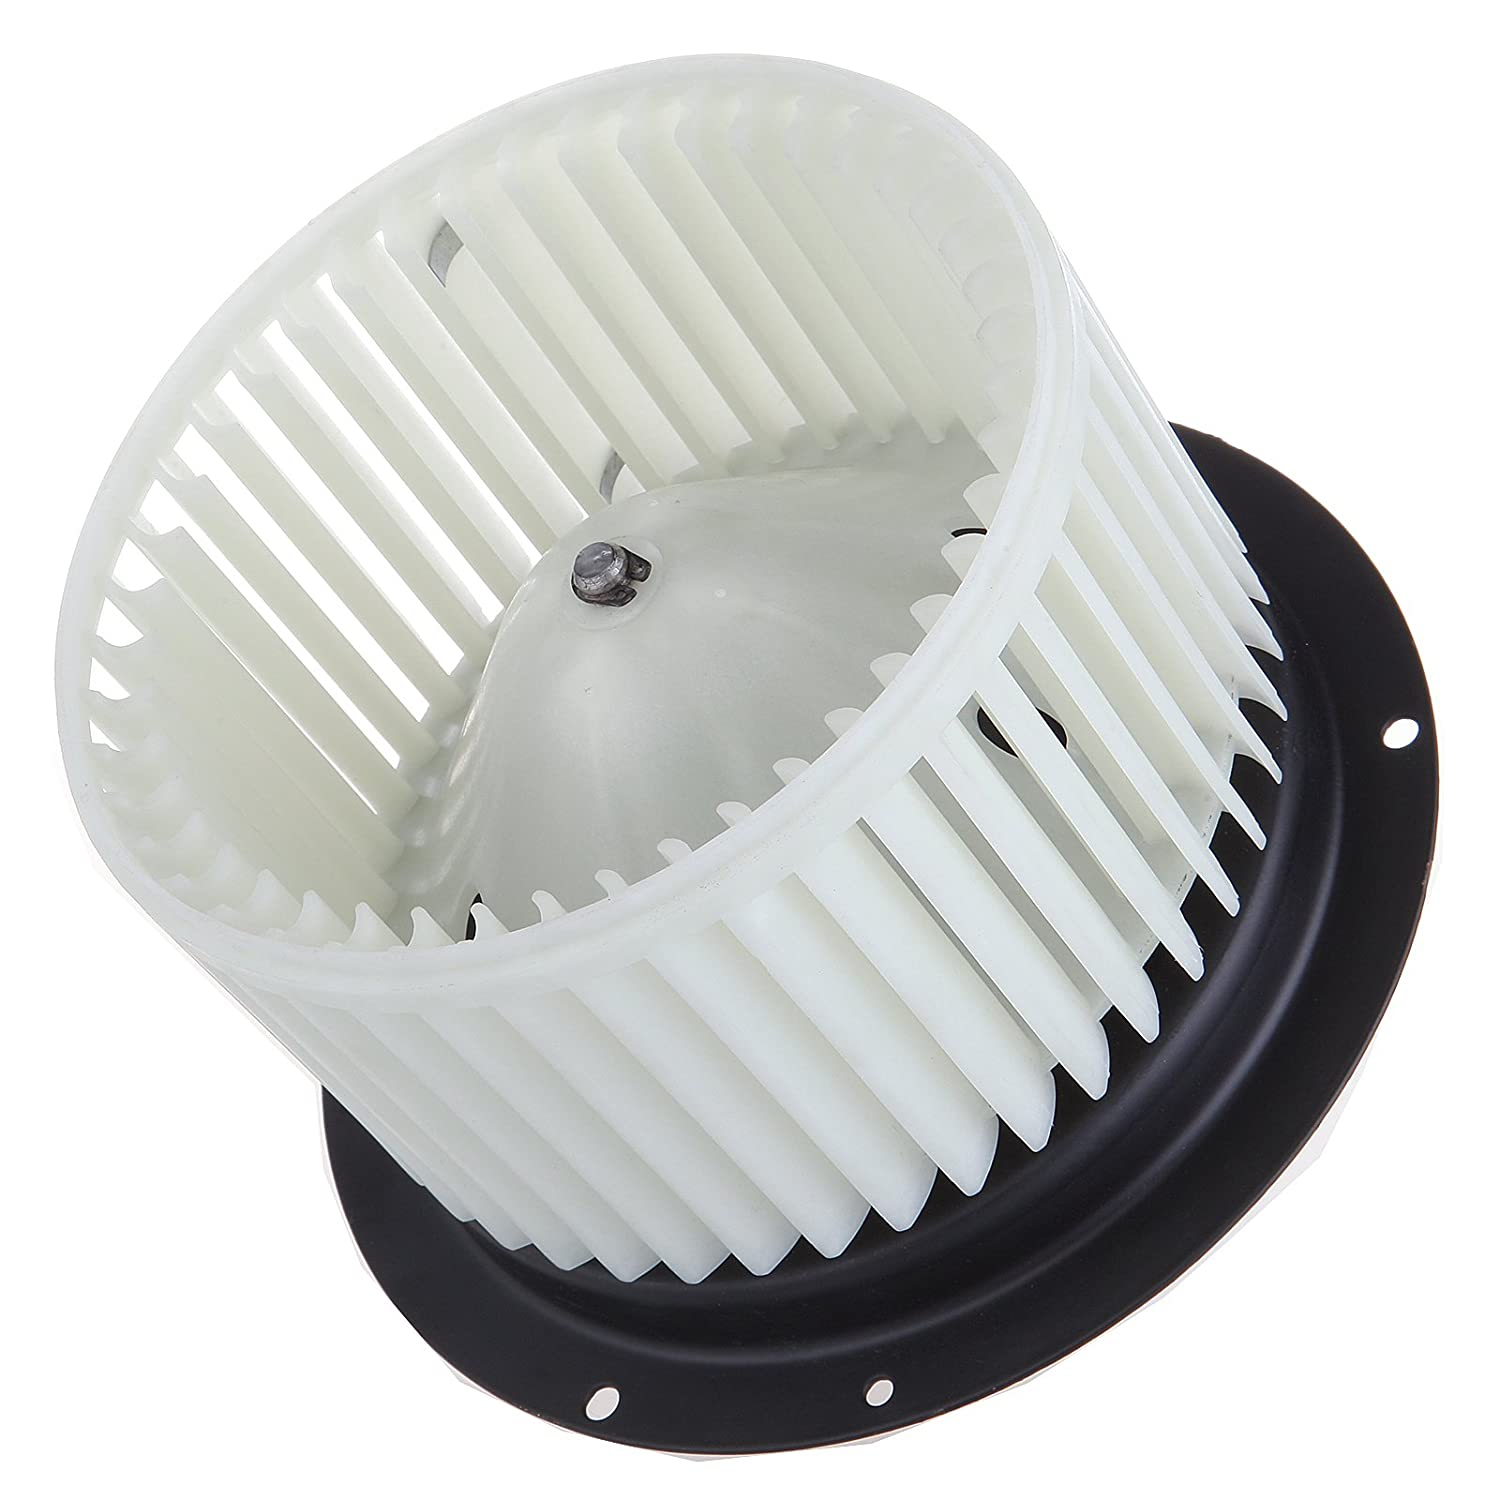 Scitoo ABS plastic Heater Blower Motor w/Fan HVAC Resistors Blowers Motors fit 2000-05 Ford Excursion/1999-07 Ford F250/1999-07 Ford F350/1999-03 Ford F450/1999-03 Ford F550 058378-5206-1644173